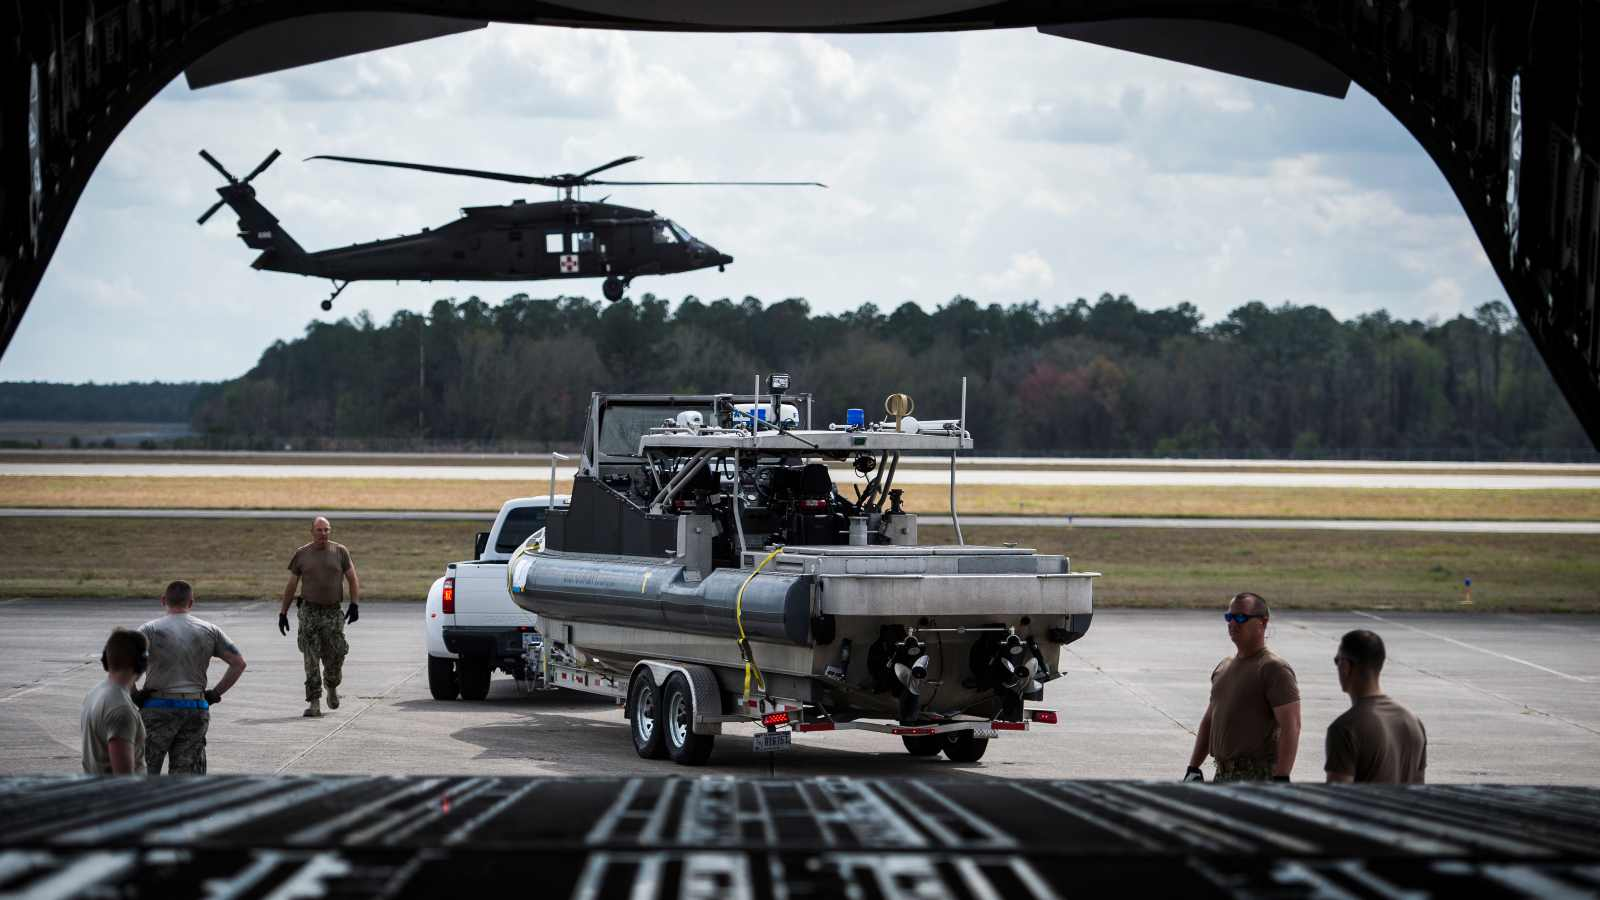 A U.S. Coast Guard boat is parked in position to be loaded onto an Air Force C-17 Globemaster, as an Army UH-60 Black Hawk prepares to land during Exercise Patriot Sands, Naval Air Station Cecil Field, Florida, Feb. 22, 2019. Exercise Patriot Sands is a joint-service exercise coordinated by the Air Force Reserve, designed to integrate first responders from federal, state, local agencies and the military by providing quick response training in the event of a regional emergency or natural disaster. (U.S. Air Force photo by Tech. Sgt. Larry E. Reid Jr.)